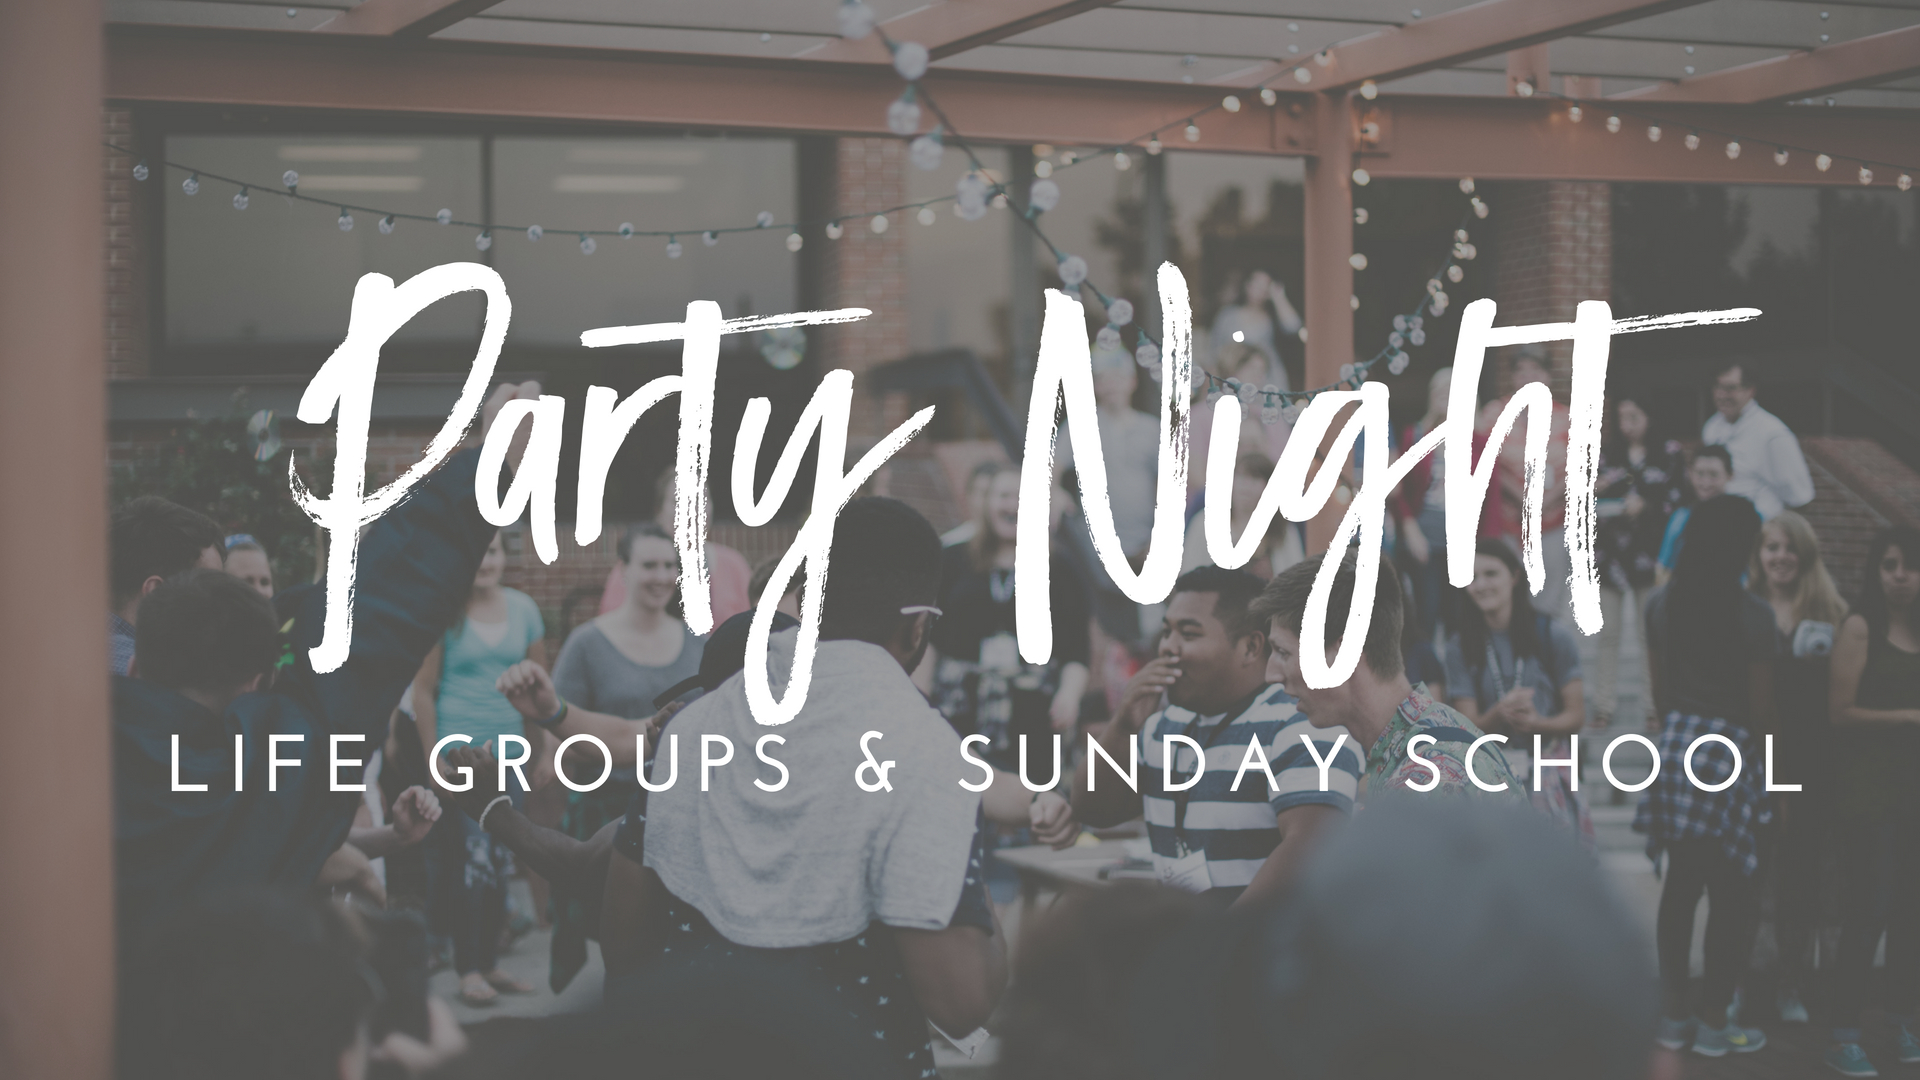 Lifegroup & Sunday School Party Night